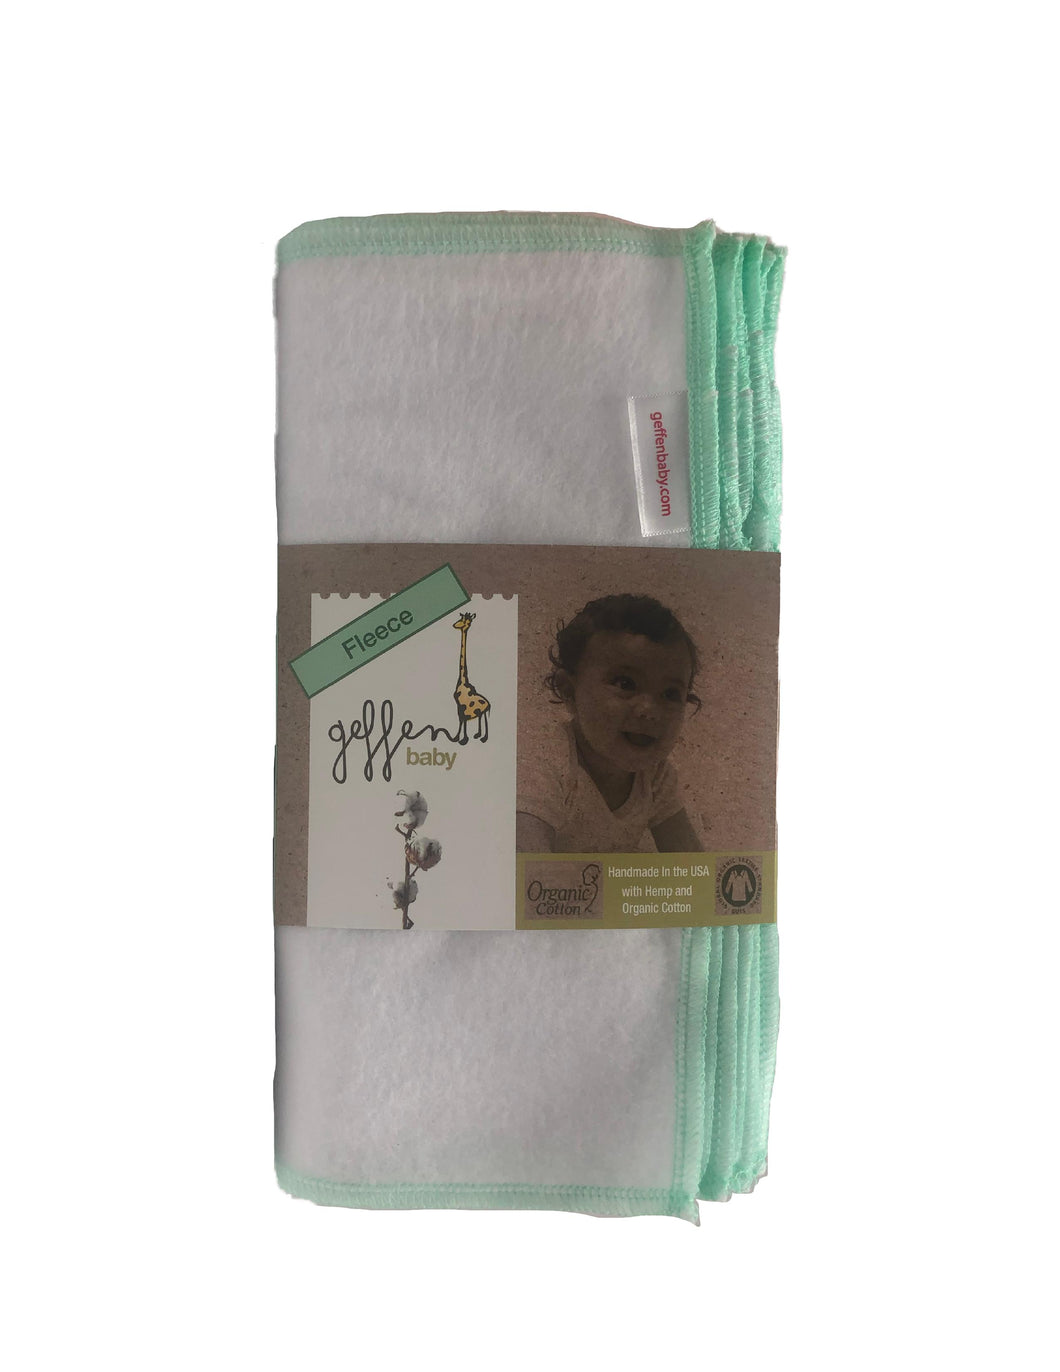 Wipes Hemp/Organic cotton Fleece